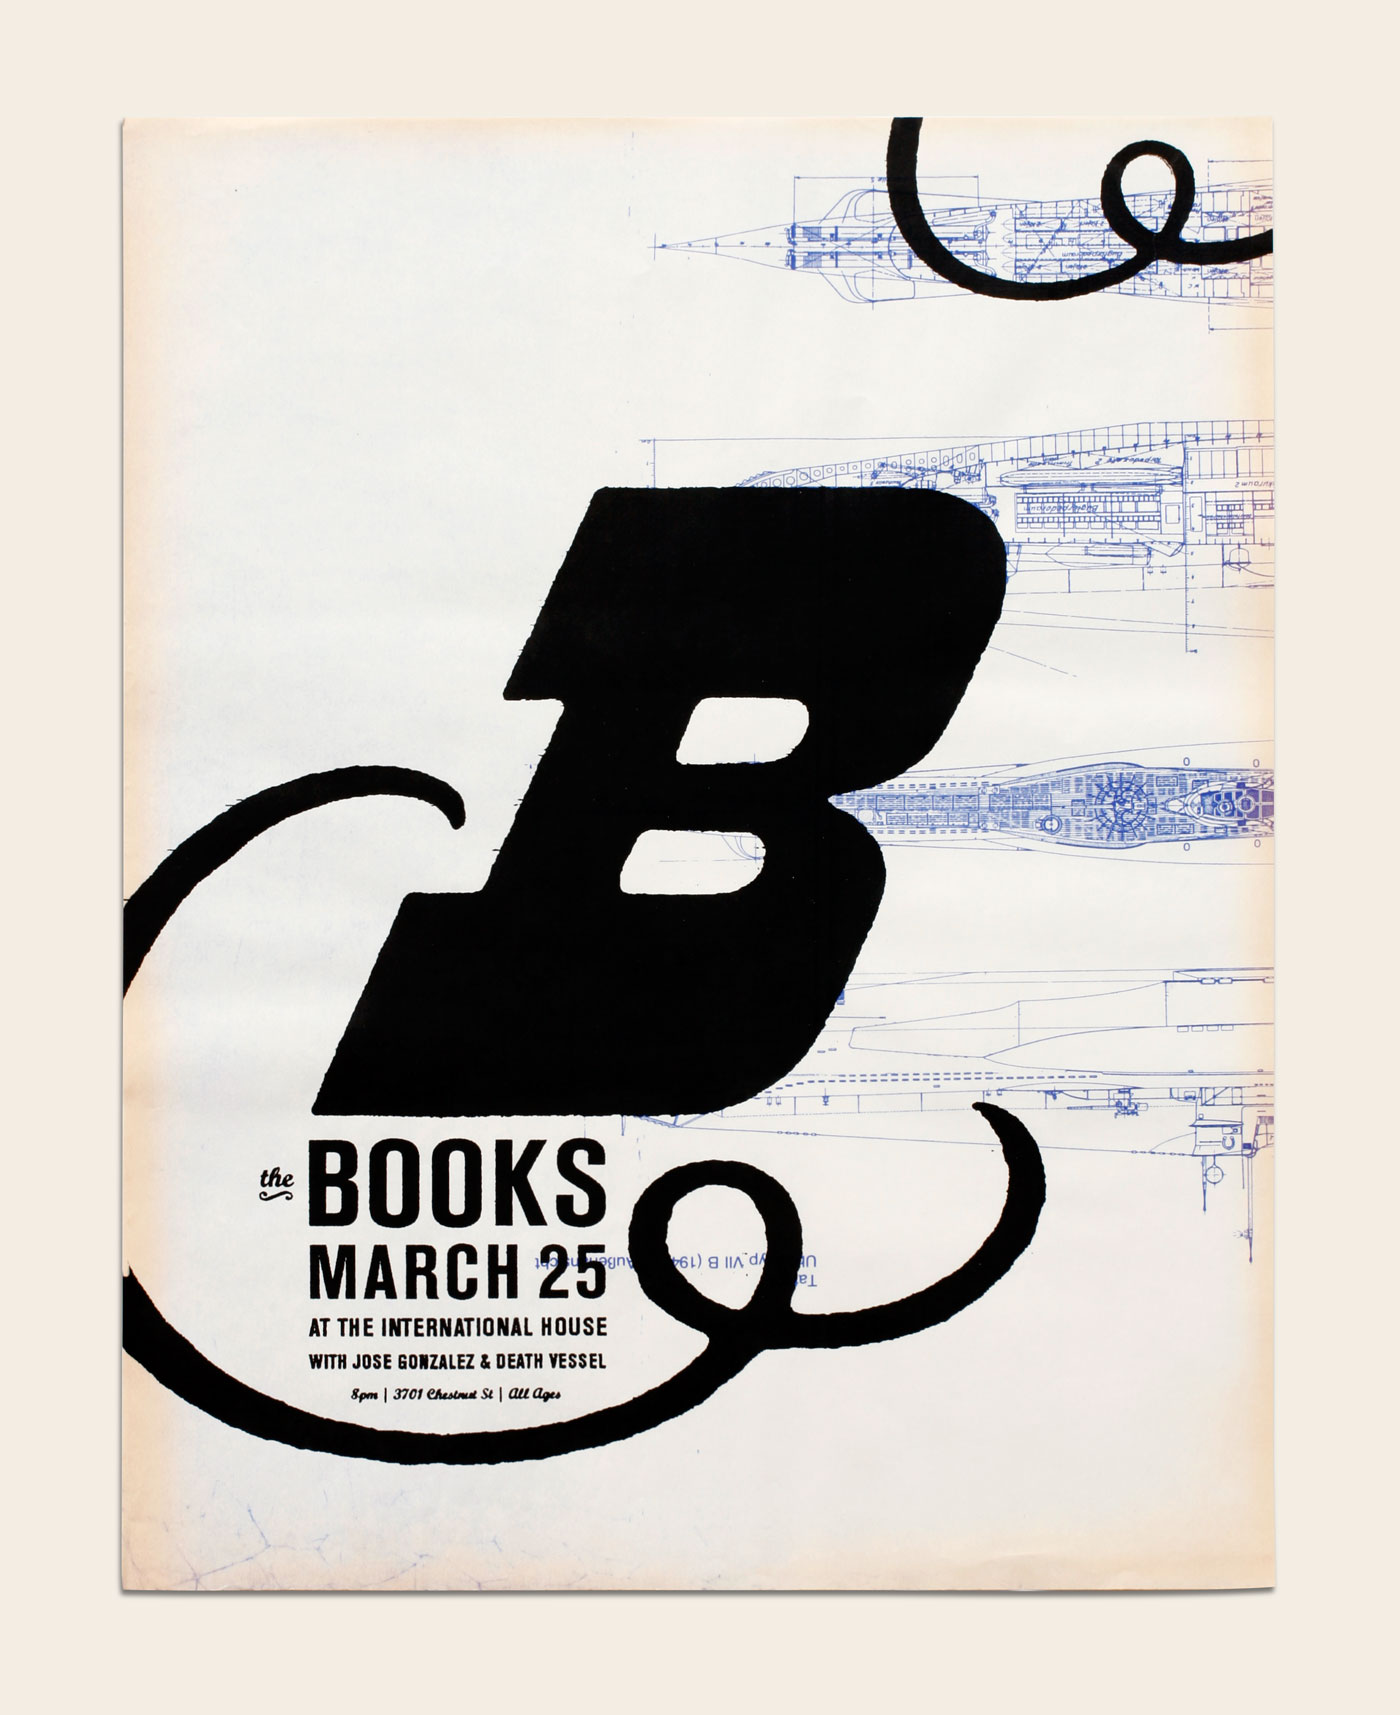 The Books Poster Series - The Heads of State